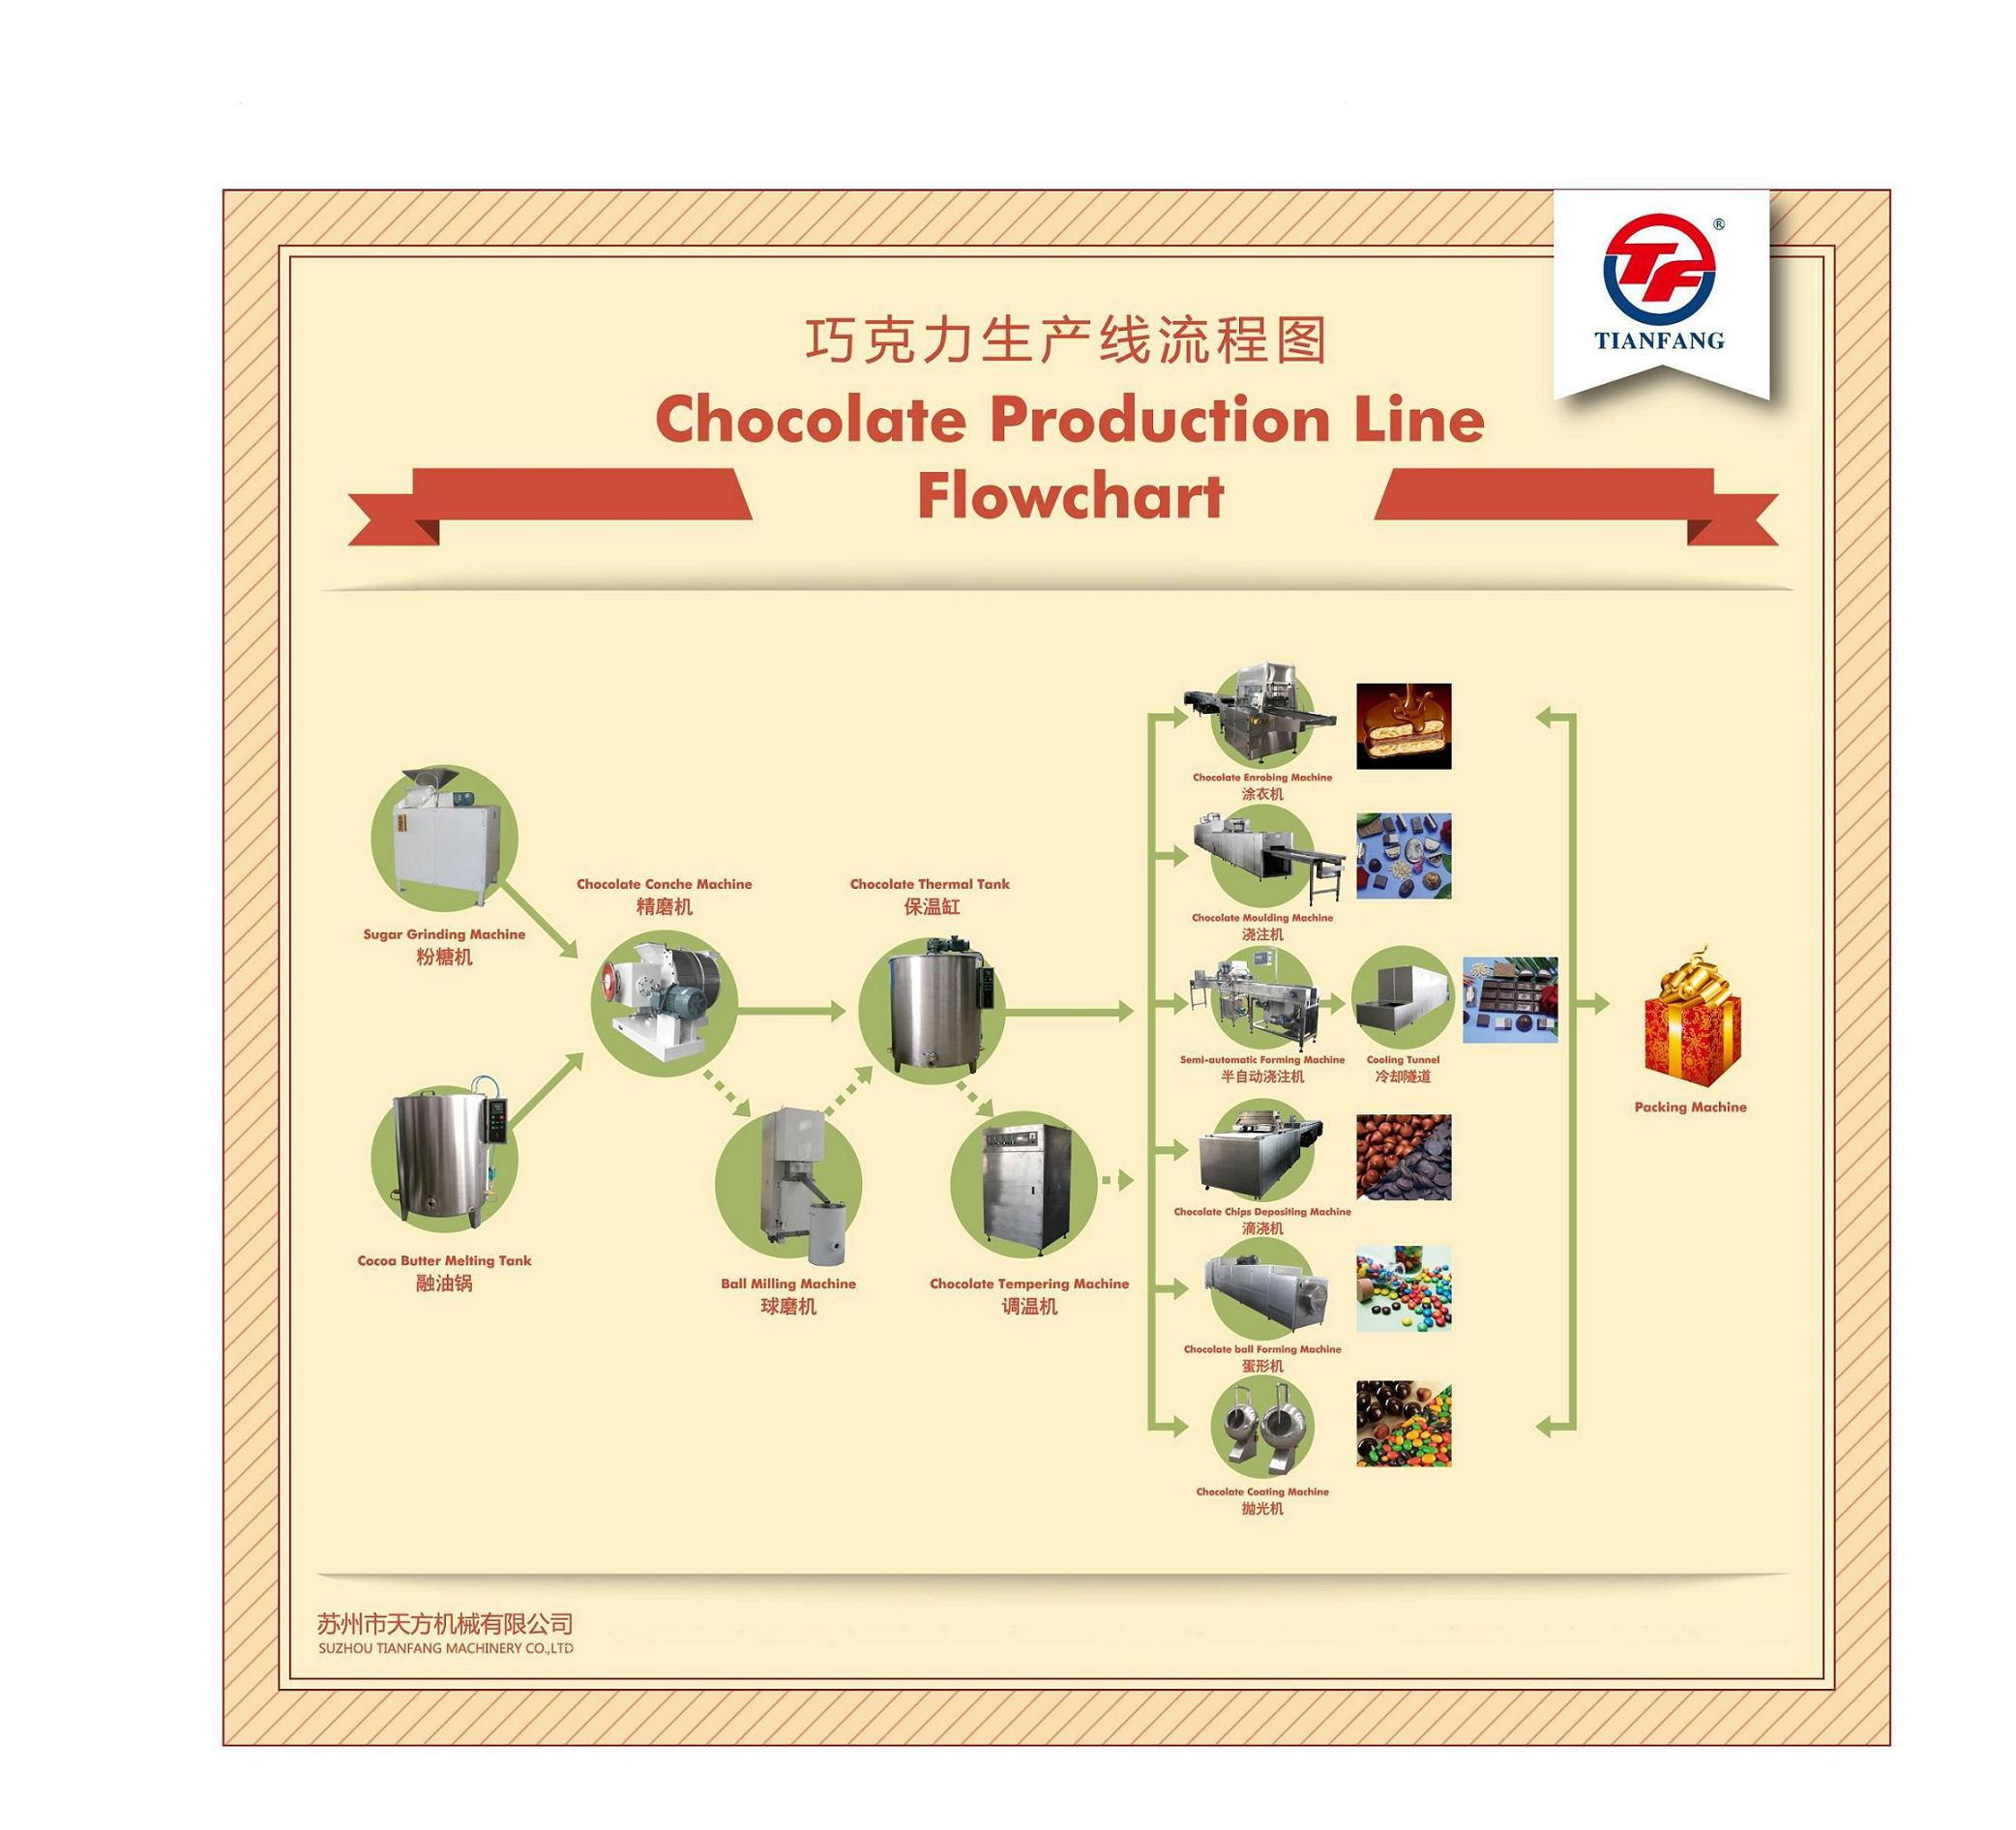 Flowchart of Chocolate Production Line - Suzhou Tianfang Machinery ...